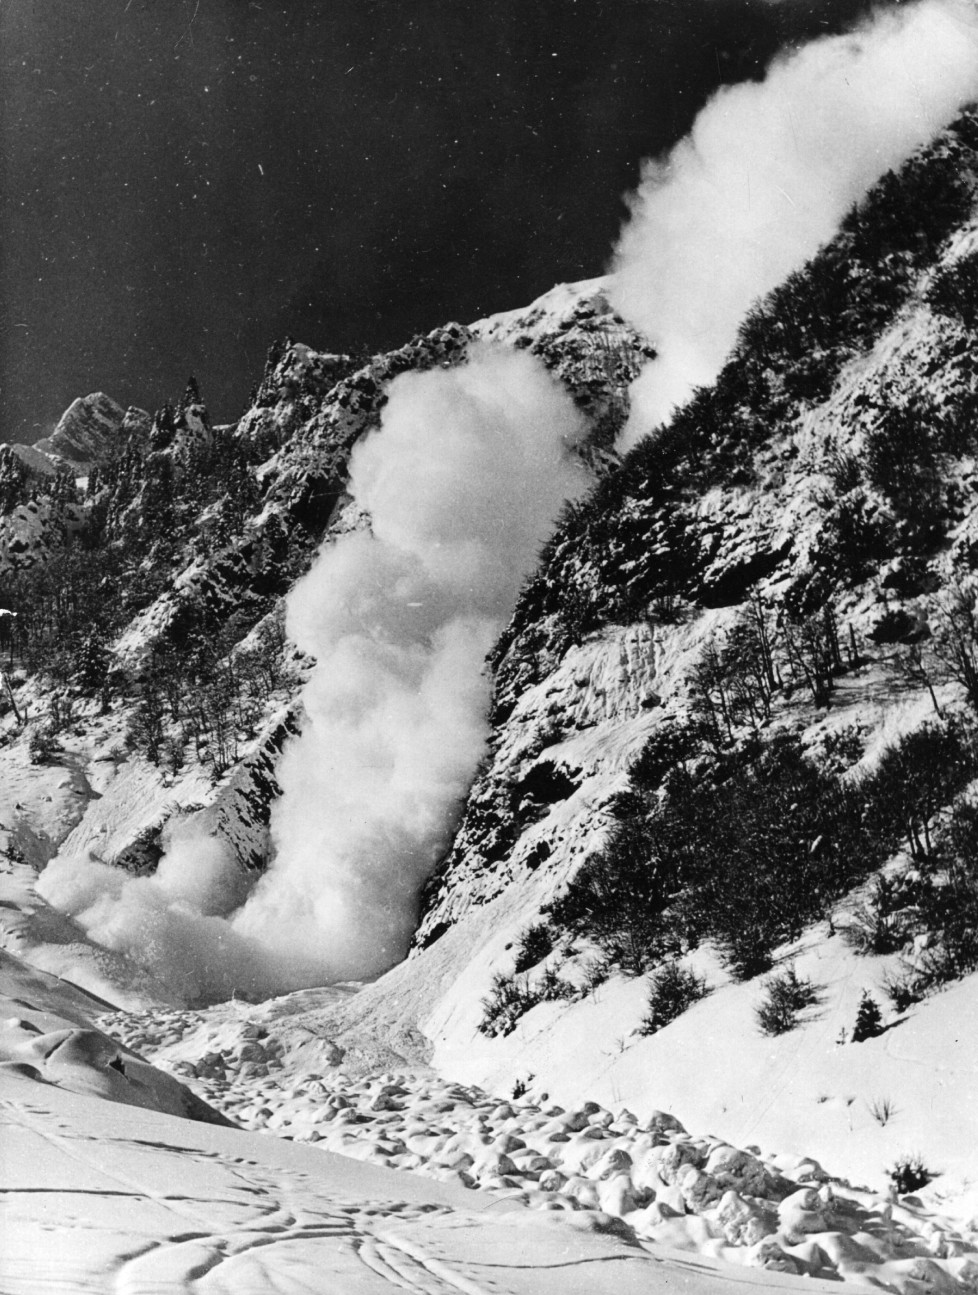 25th March 1958: A small avalanche in Switzerland. (Photo by Keystone/Getty Images)